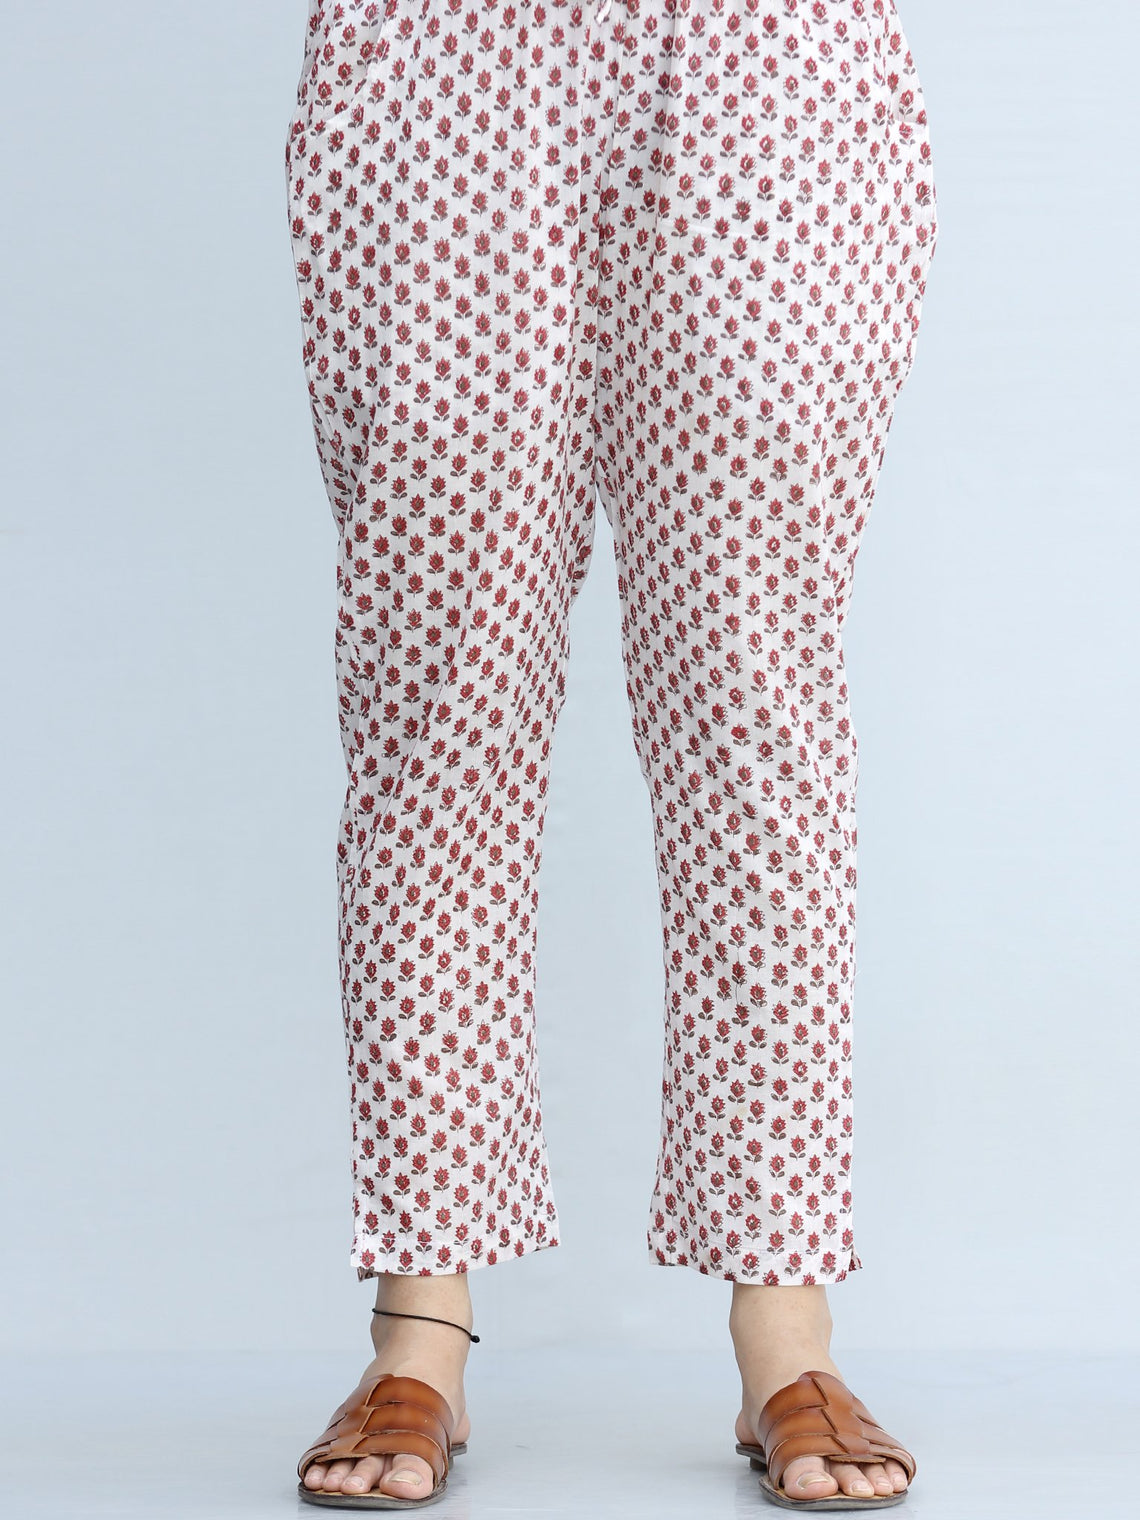 Jashn Gulerana - Cotton Pants - KP03EXXX